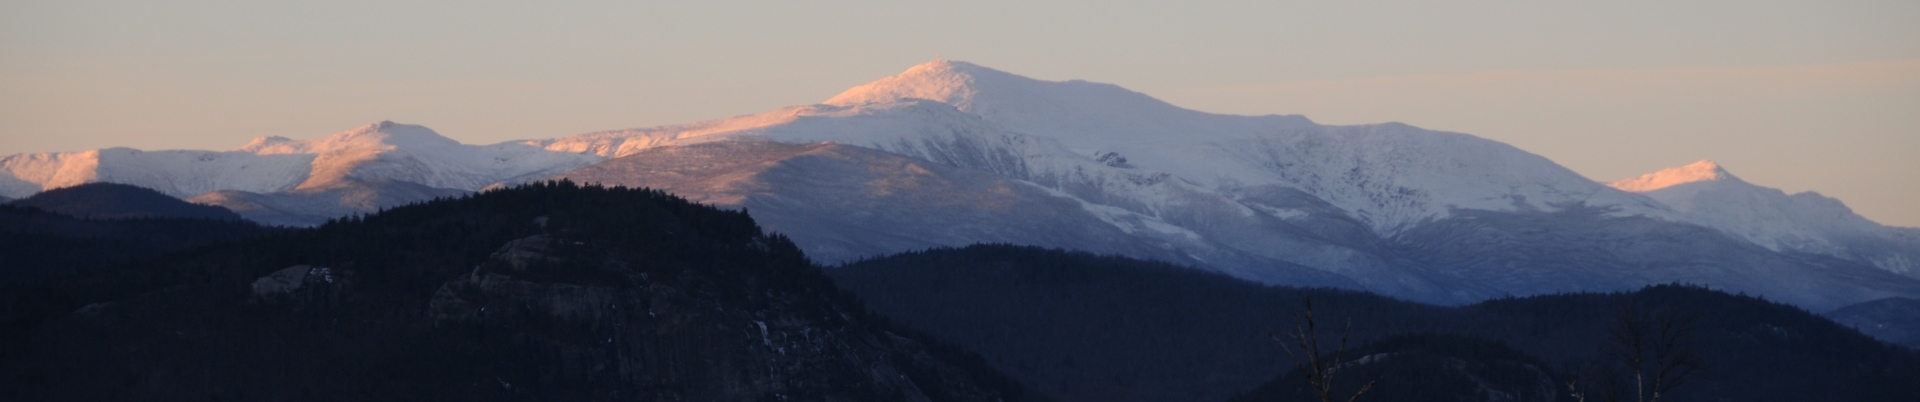 Mount Washington in the evening